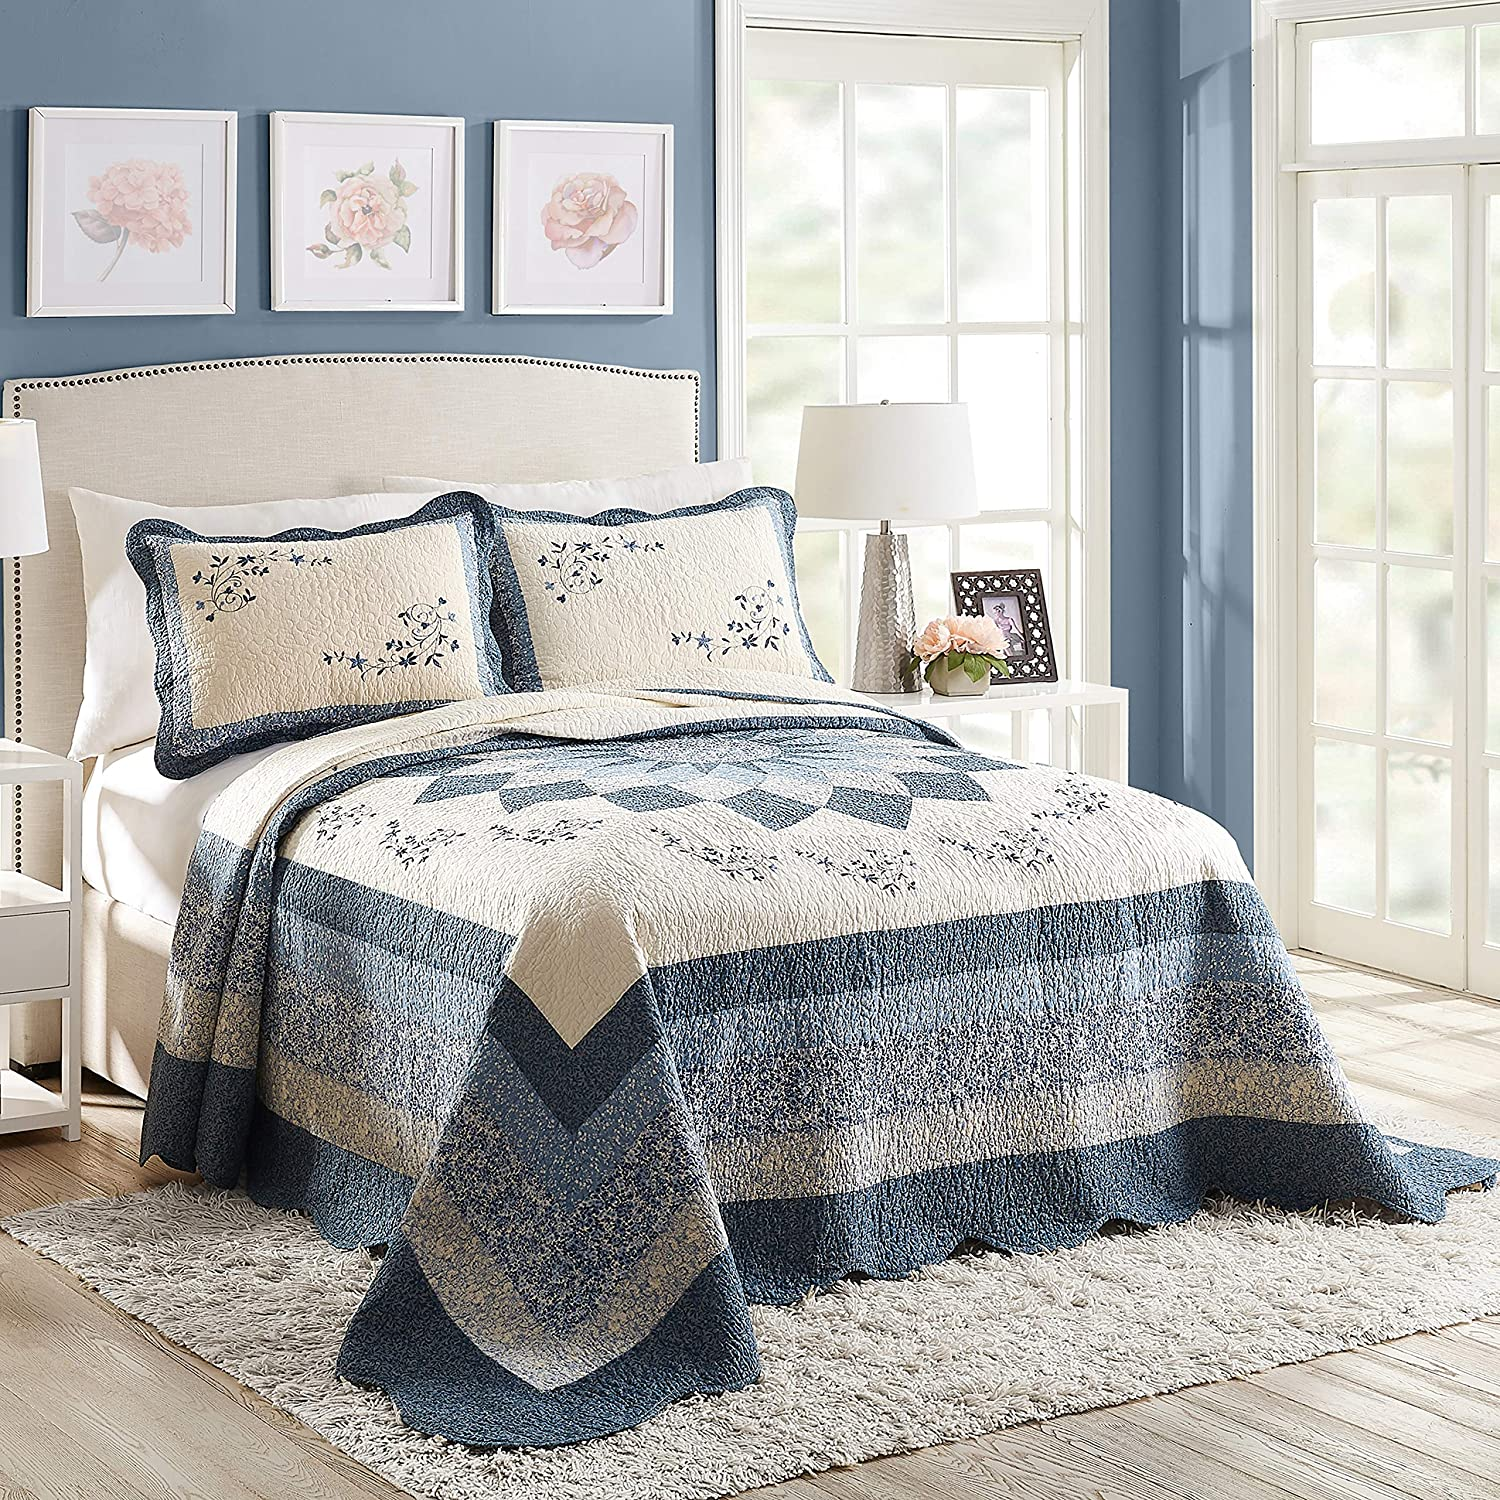 Modern Heirloom Collection Charlotte Bedspread, Queen, Blue